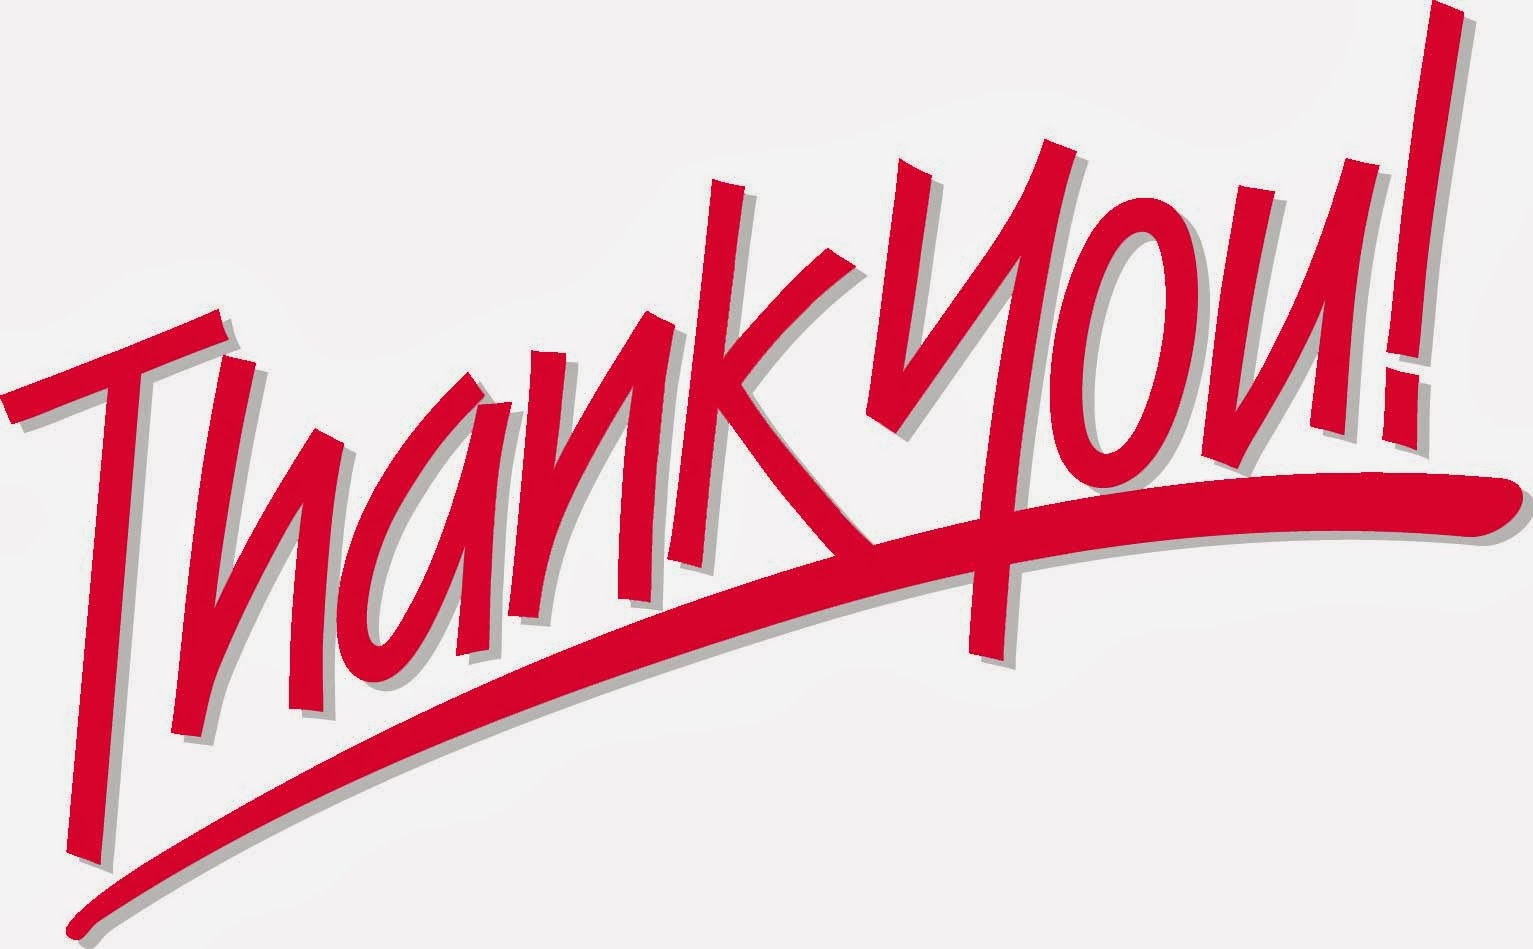 Mind Thank You Very Much Clipart Panda Free Clipart Images Thank You S Flowers Thank You S Images photos Thank You Pictures